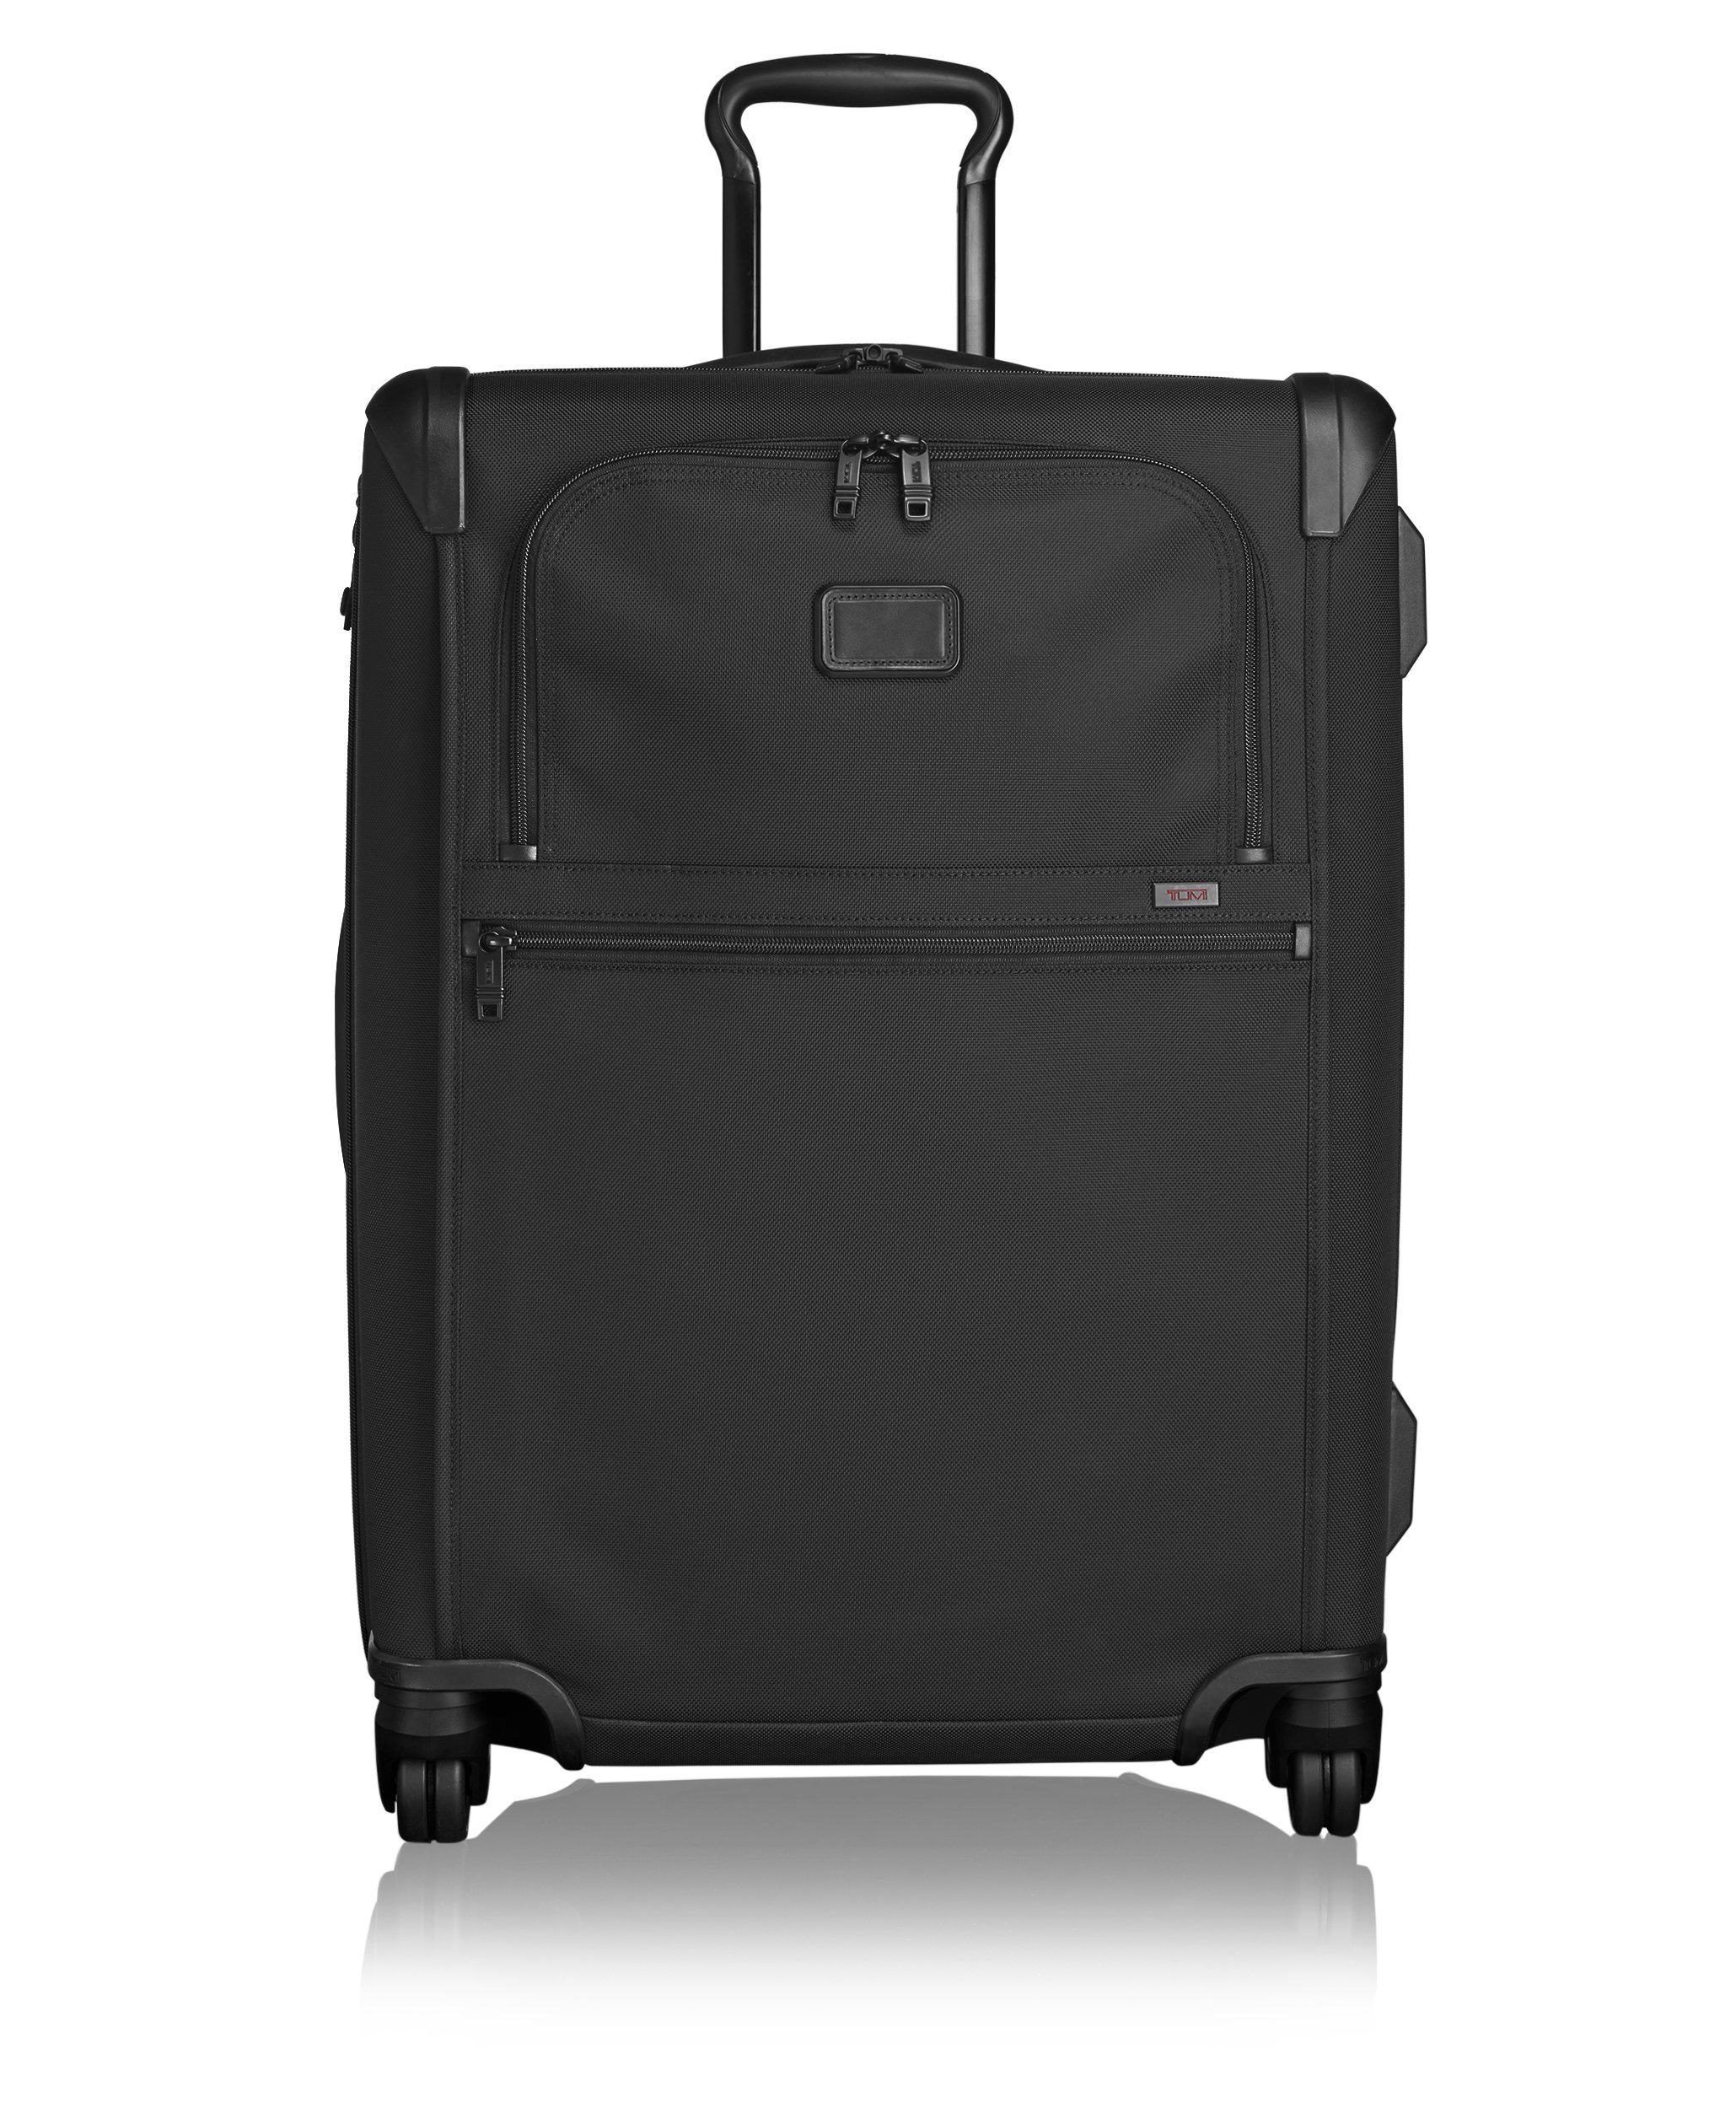 Tumi Alpha 2 Short Trip Expandable 4 Wheel Packing Case, Black, One Size by Tumi